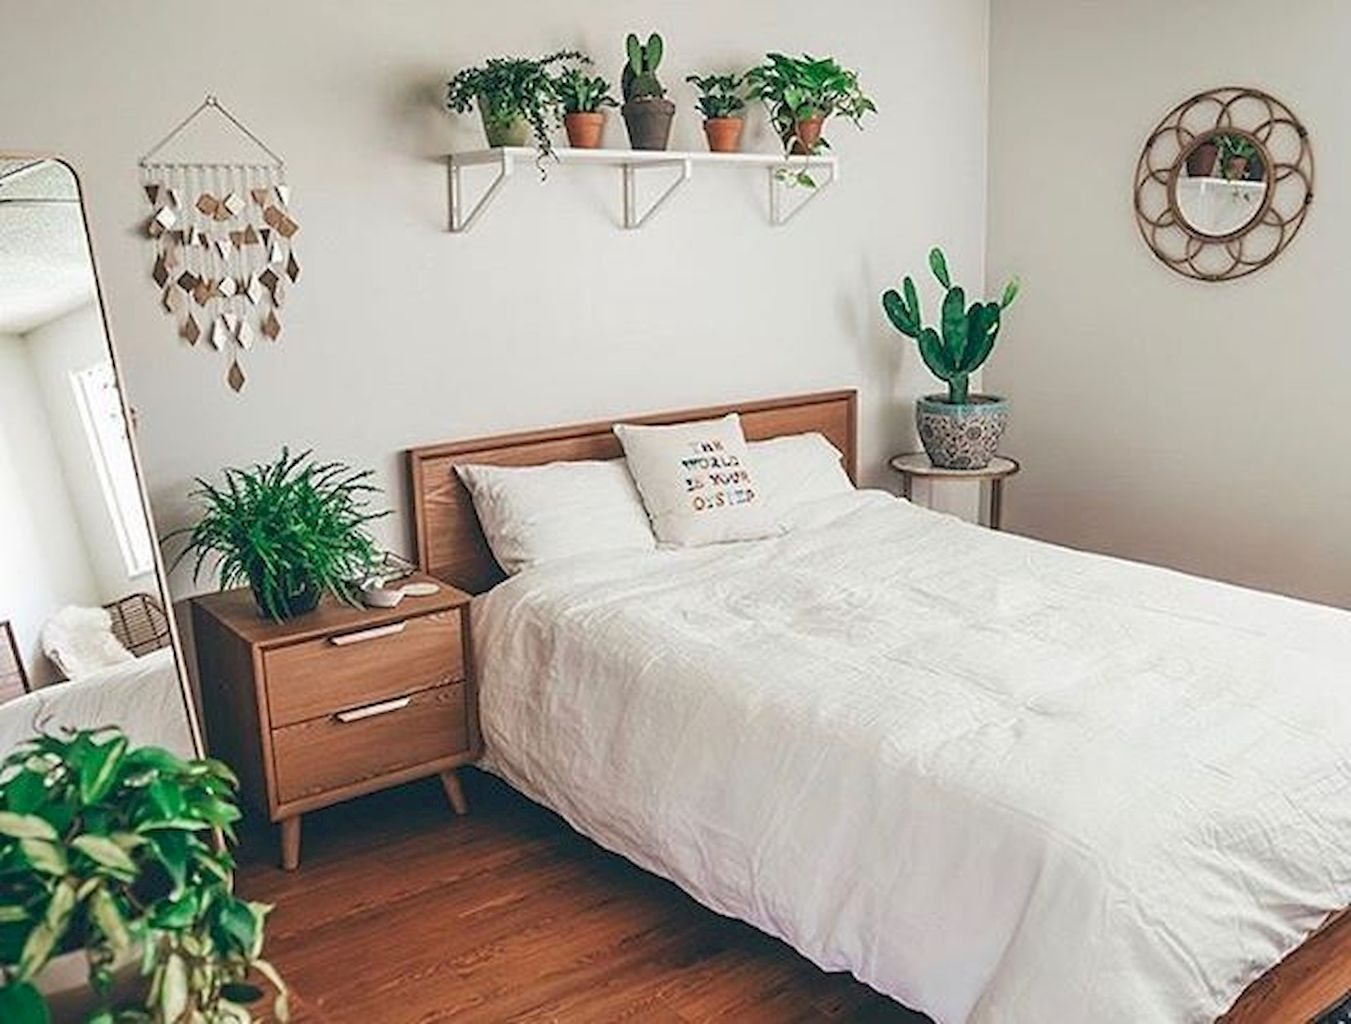 Beyond Function Bedside Table Designs